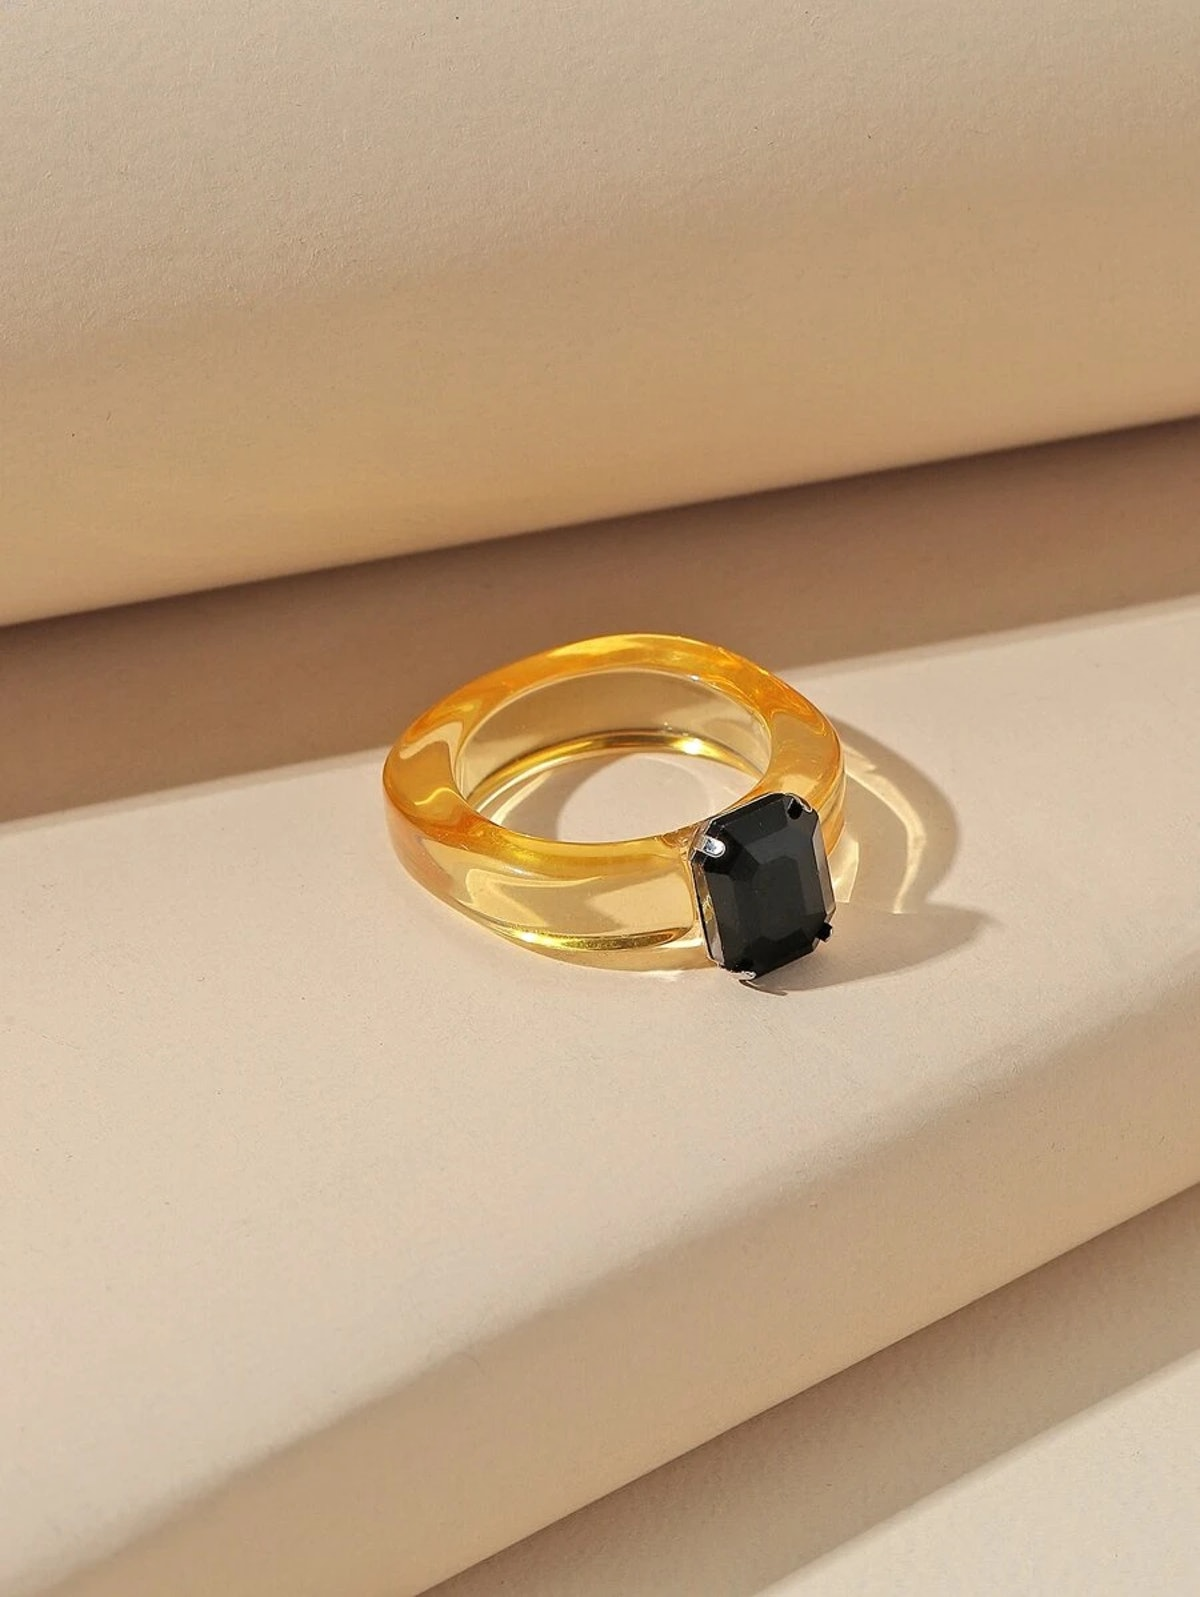 Romwe Clear Acrylic Ring